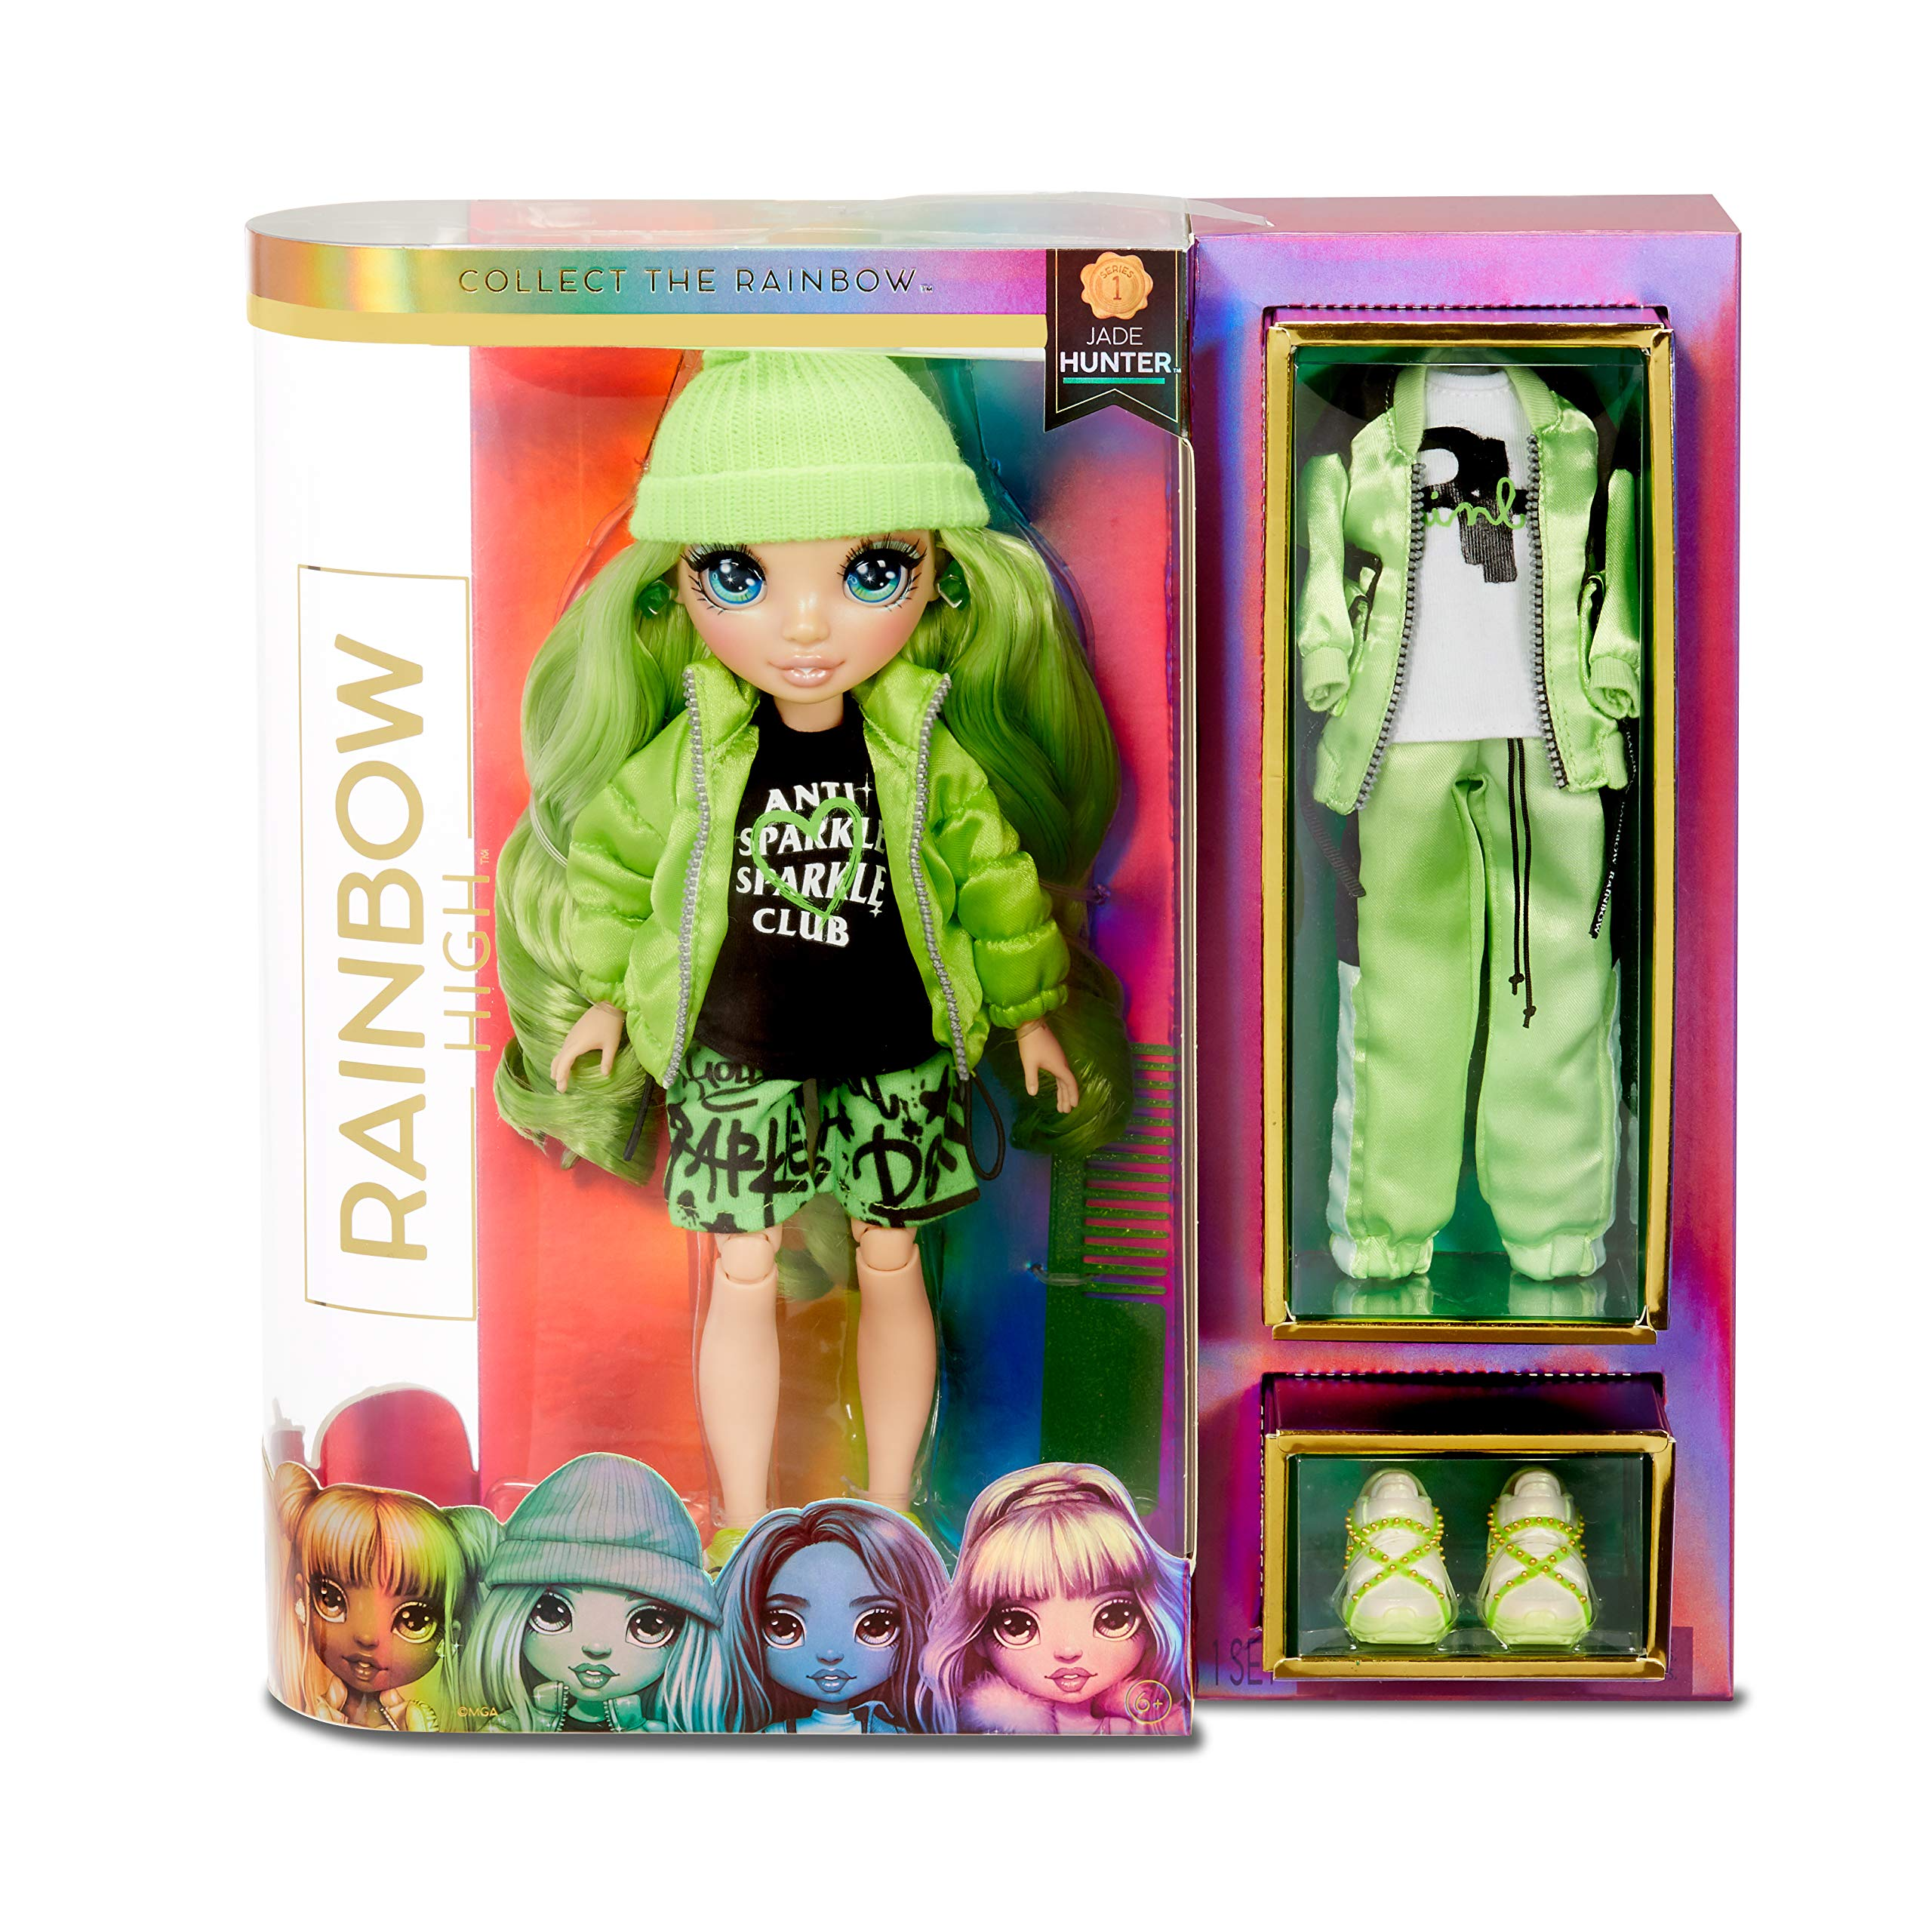 Rainbow Surprise Rainbow High Jade Hunter - Green Clothes Fashion Doll with 2 Complete Mix & Match Outfits and Accessories, Toys for Kids 4 to 15 Years Old